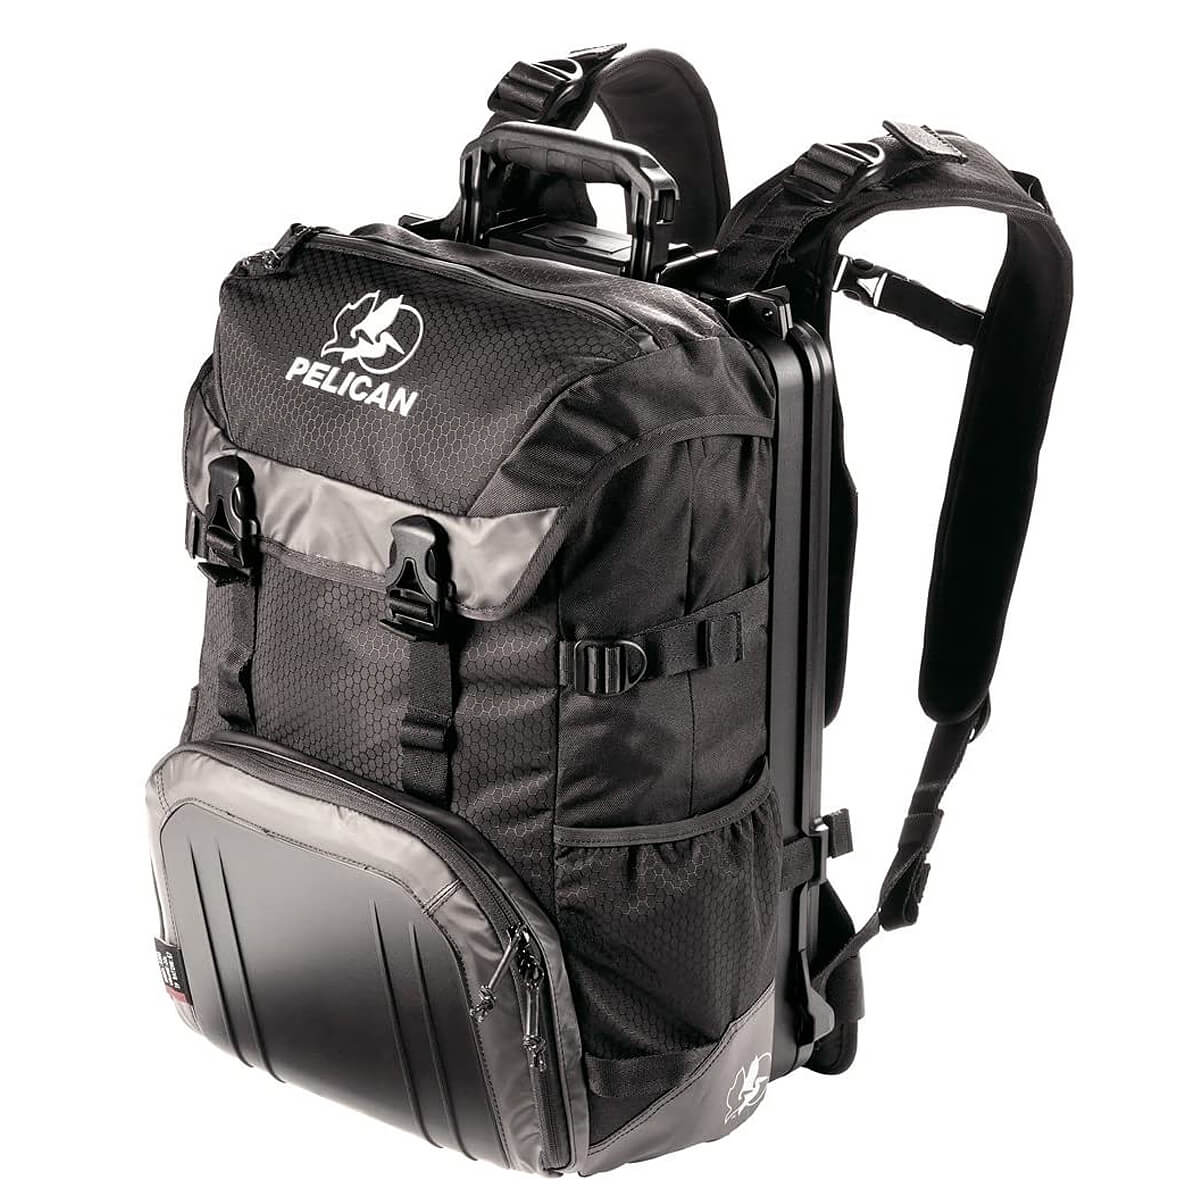 Pelican ProGear S100 Backpack